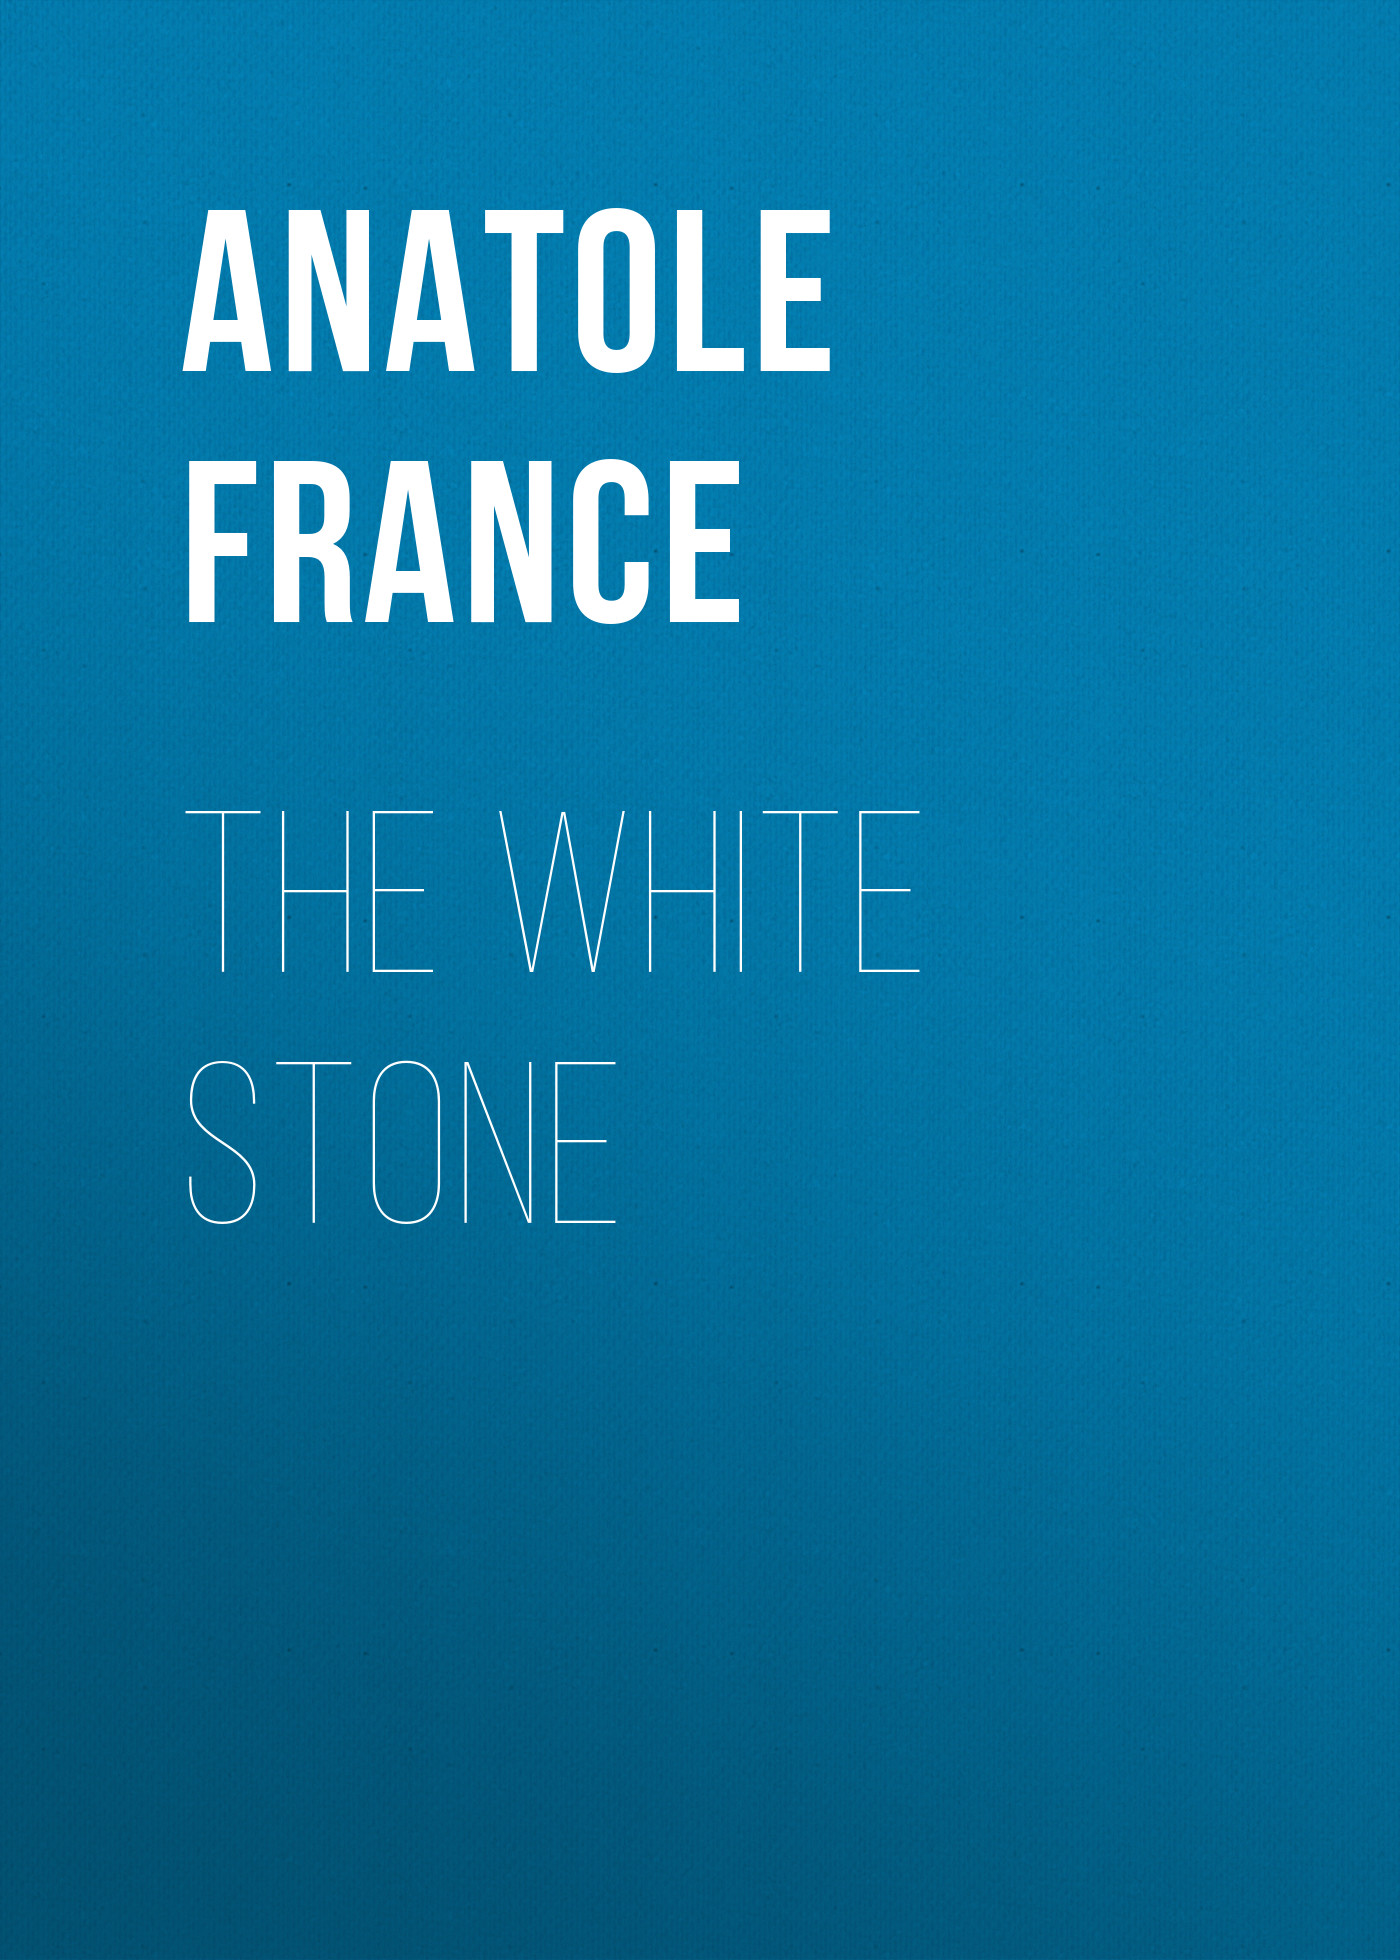 Anatole France The White Stone